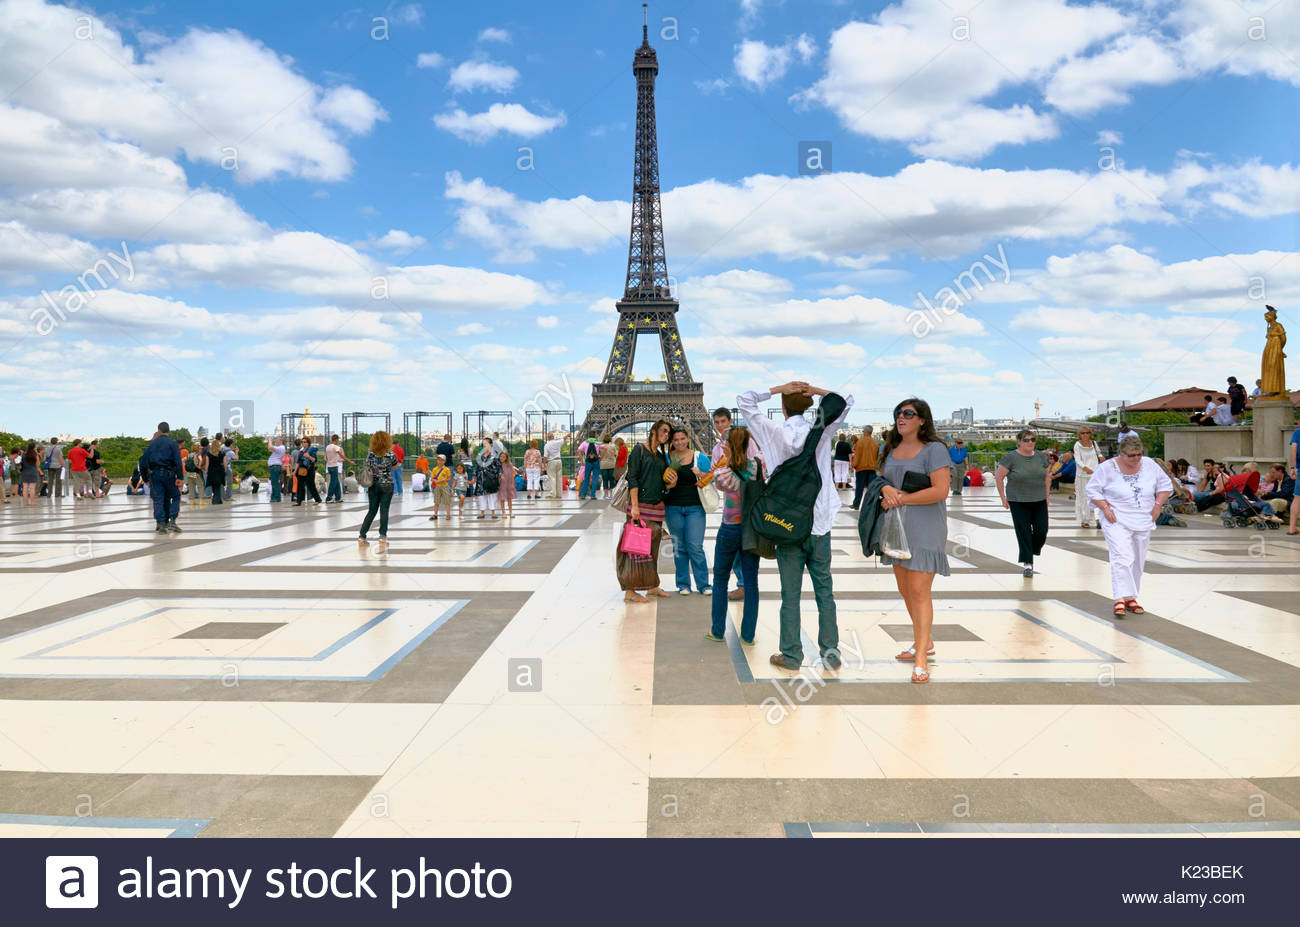 People standing, talking and relaxing on the Trocadero in front of the Eiffel tower in Paris France Europe - Stock Image